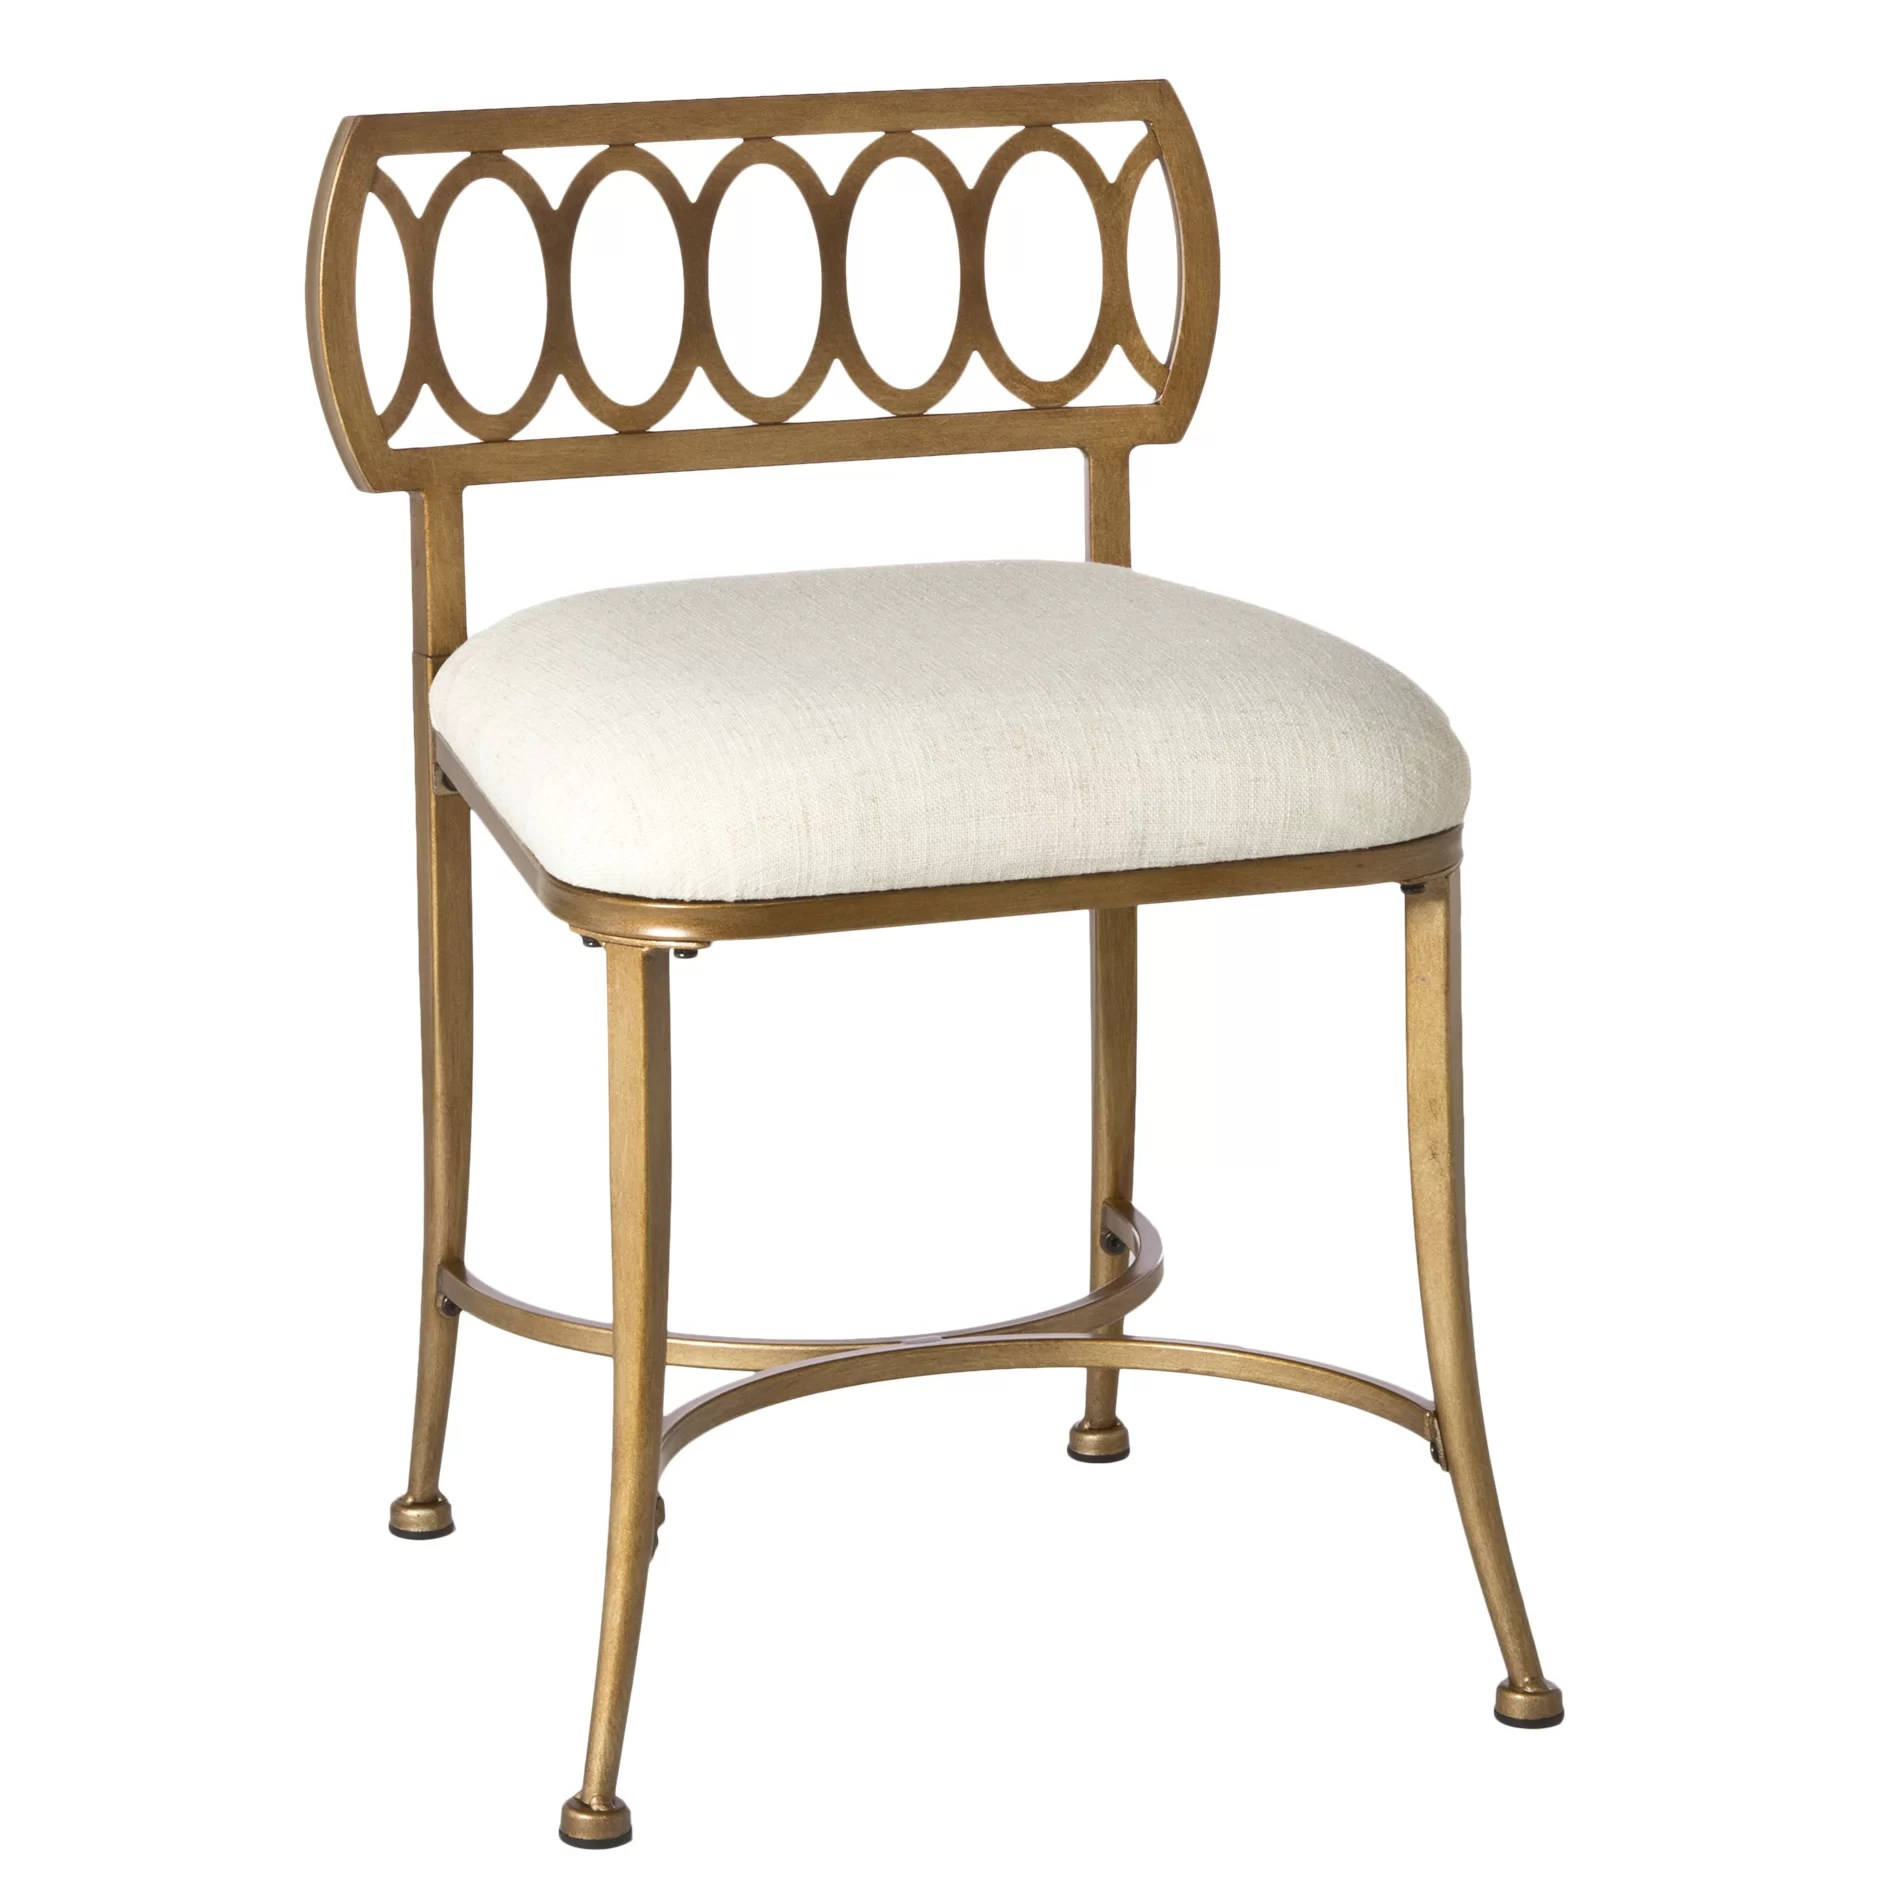 Vanity Stools Or Benches House Of Hampton Adira Vanity Stool And Reviews Wayfair